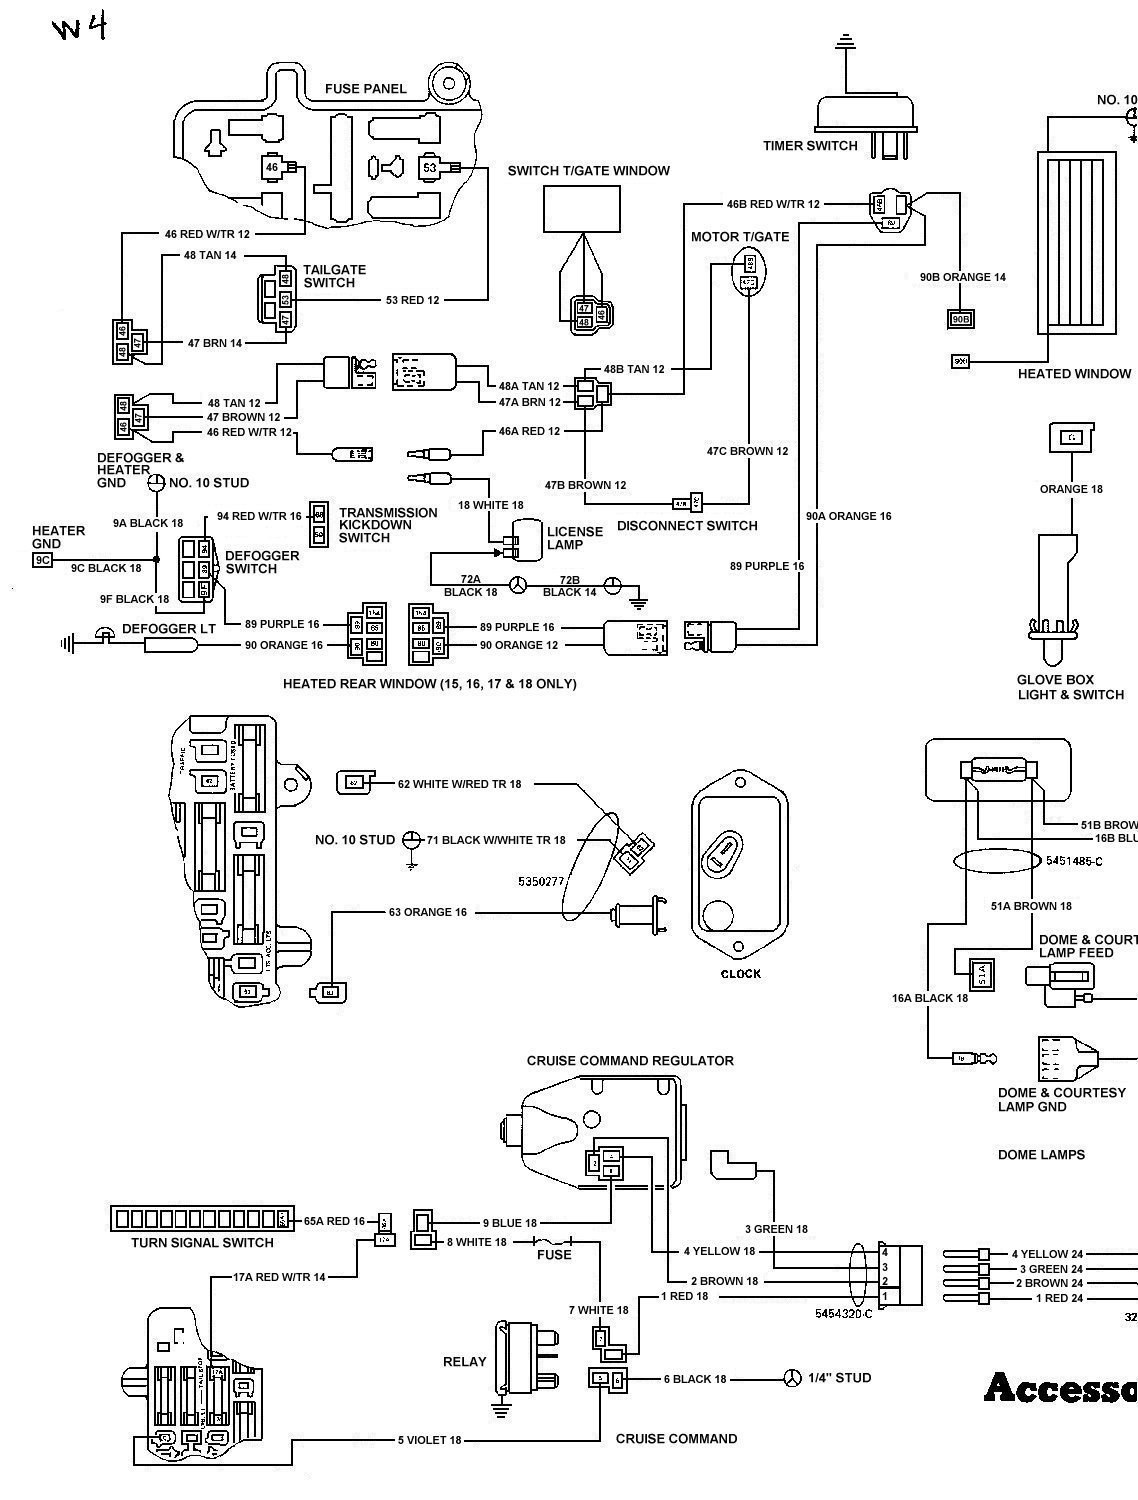 tom oljeep collins fsj wiring page rh oljeep com Rocker Switch Wiring Diagram amc 360 alternator wiring diagram